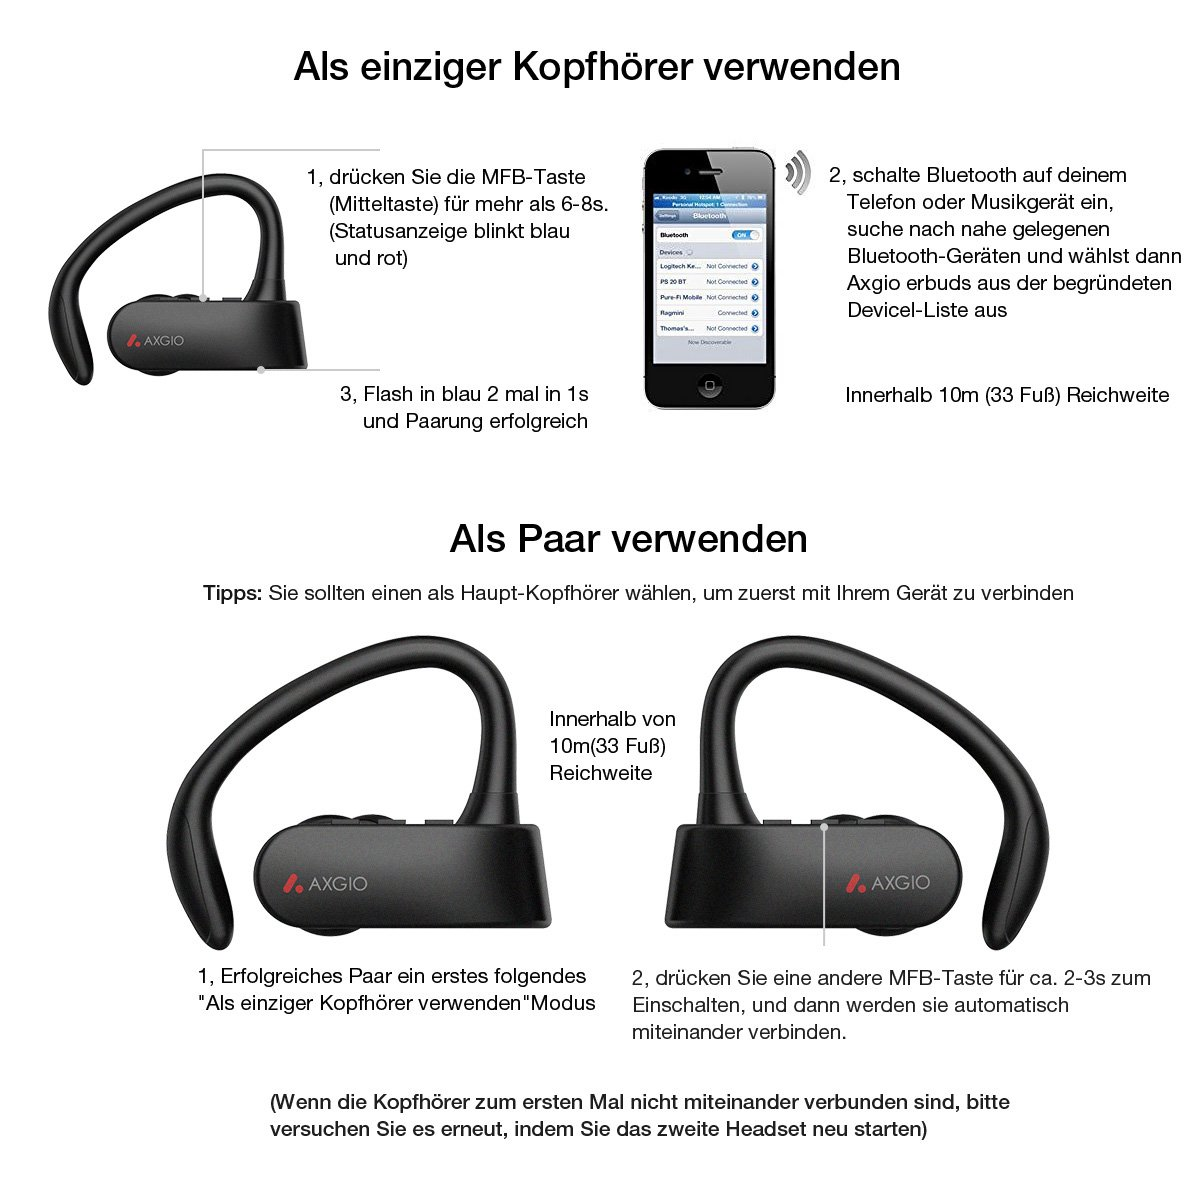 AXGIO AH-T1 True Wireless Earbuds, wasserdicht Sport: Amazon.de: Elektronik